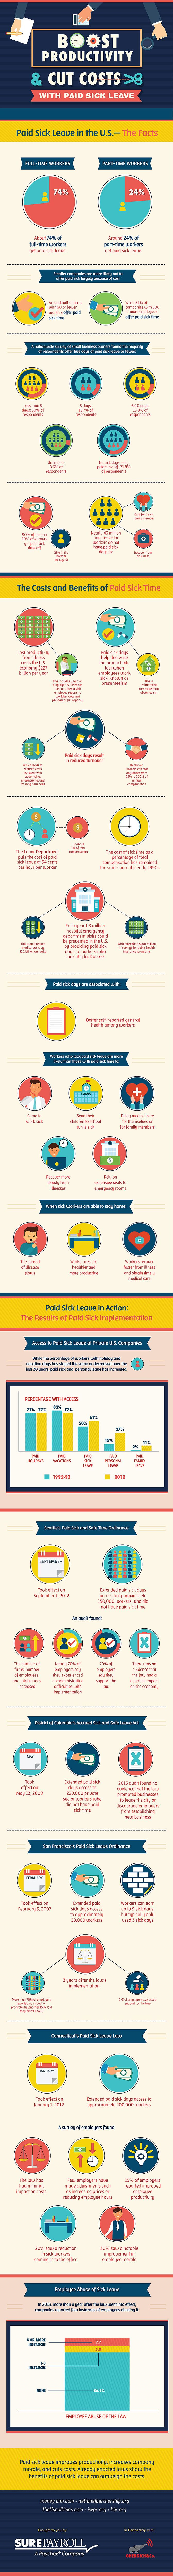 Boost Productivity and Cut Costs with Paid Sick Leave #infographic #Business #Productivity